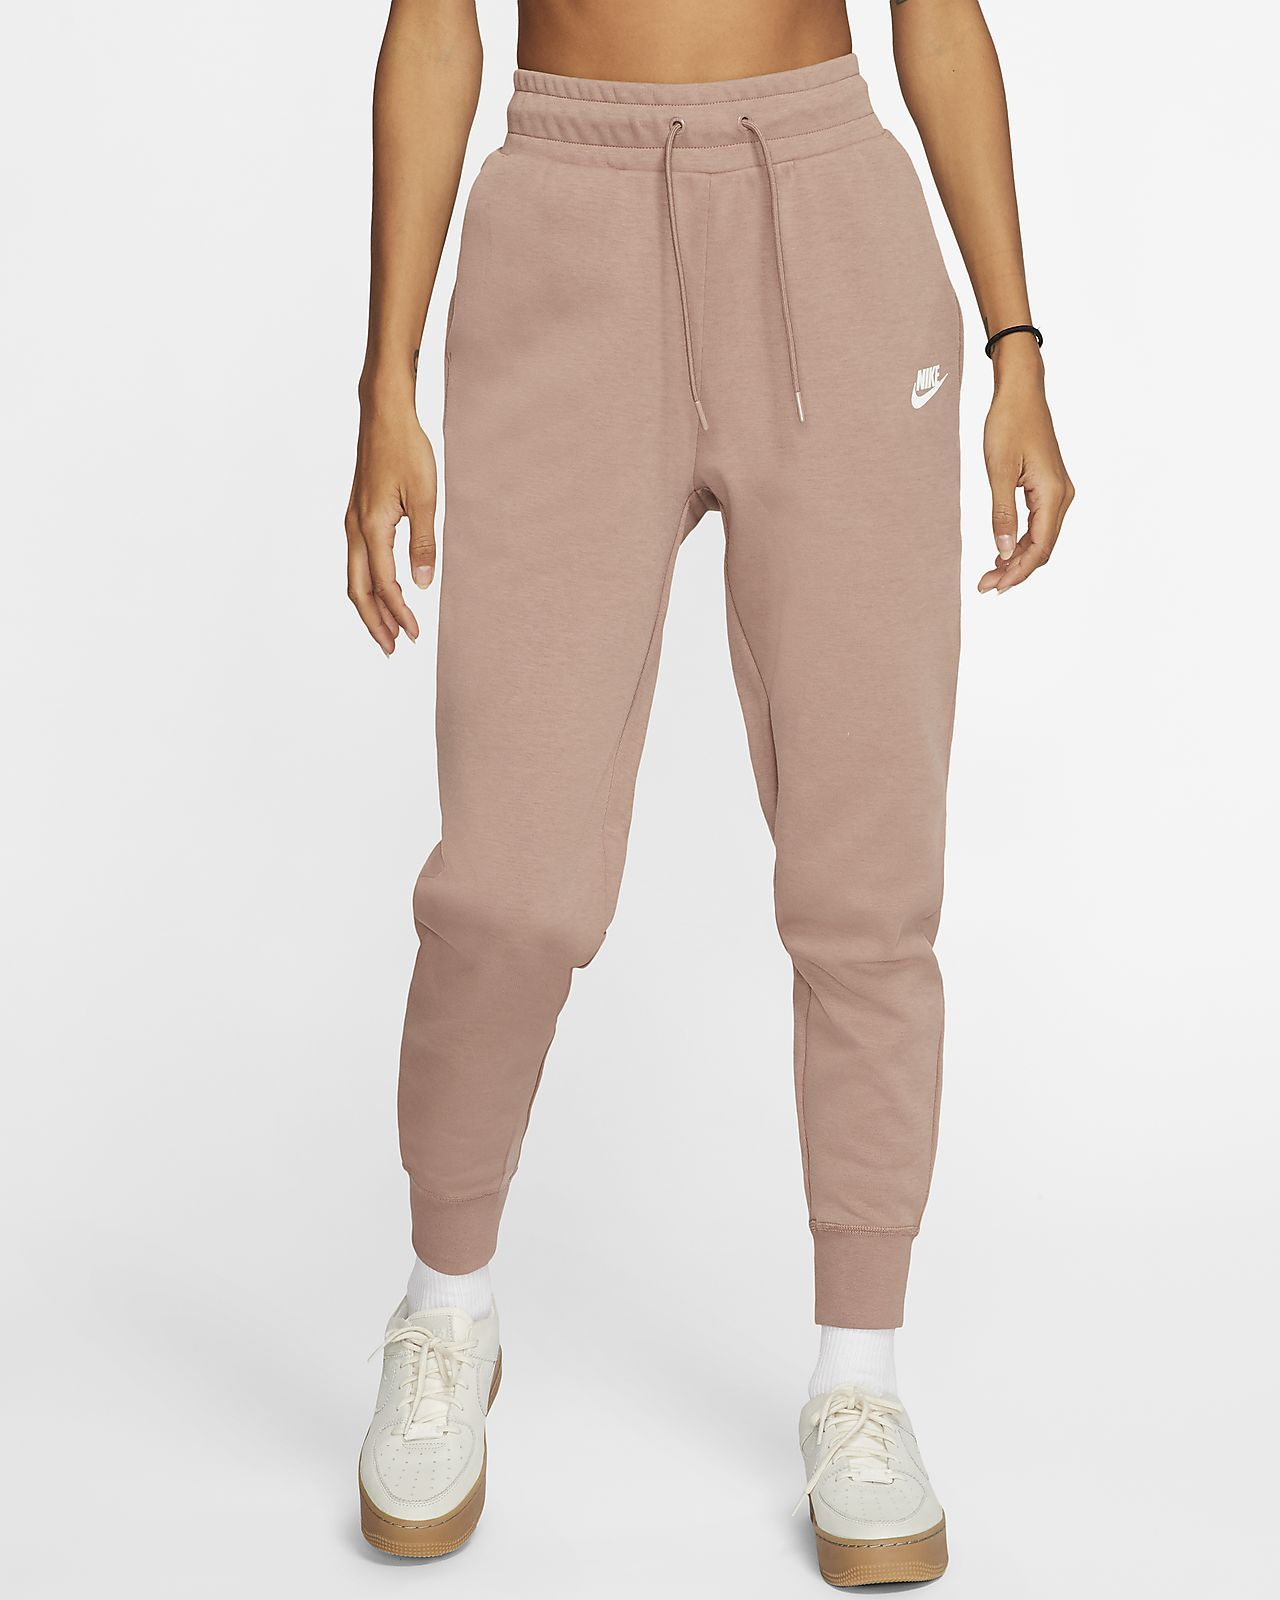 Nike Sportswear Tech Fleece Women's Pants. in